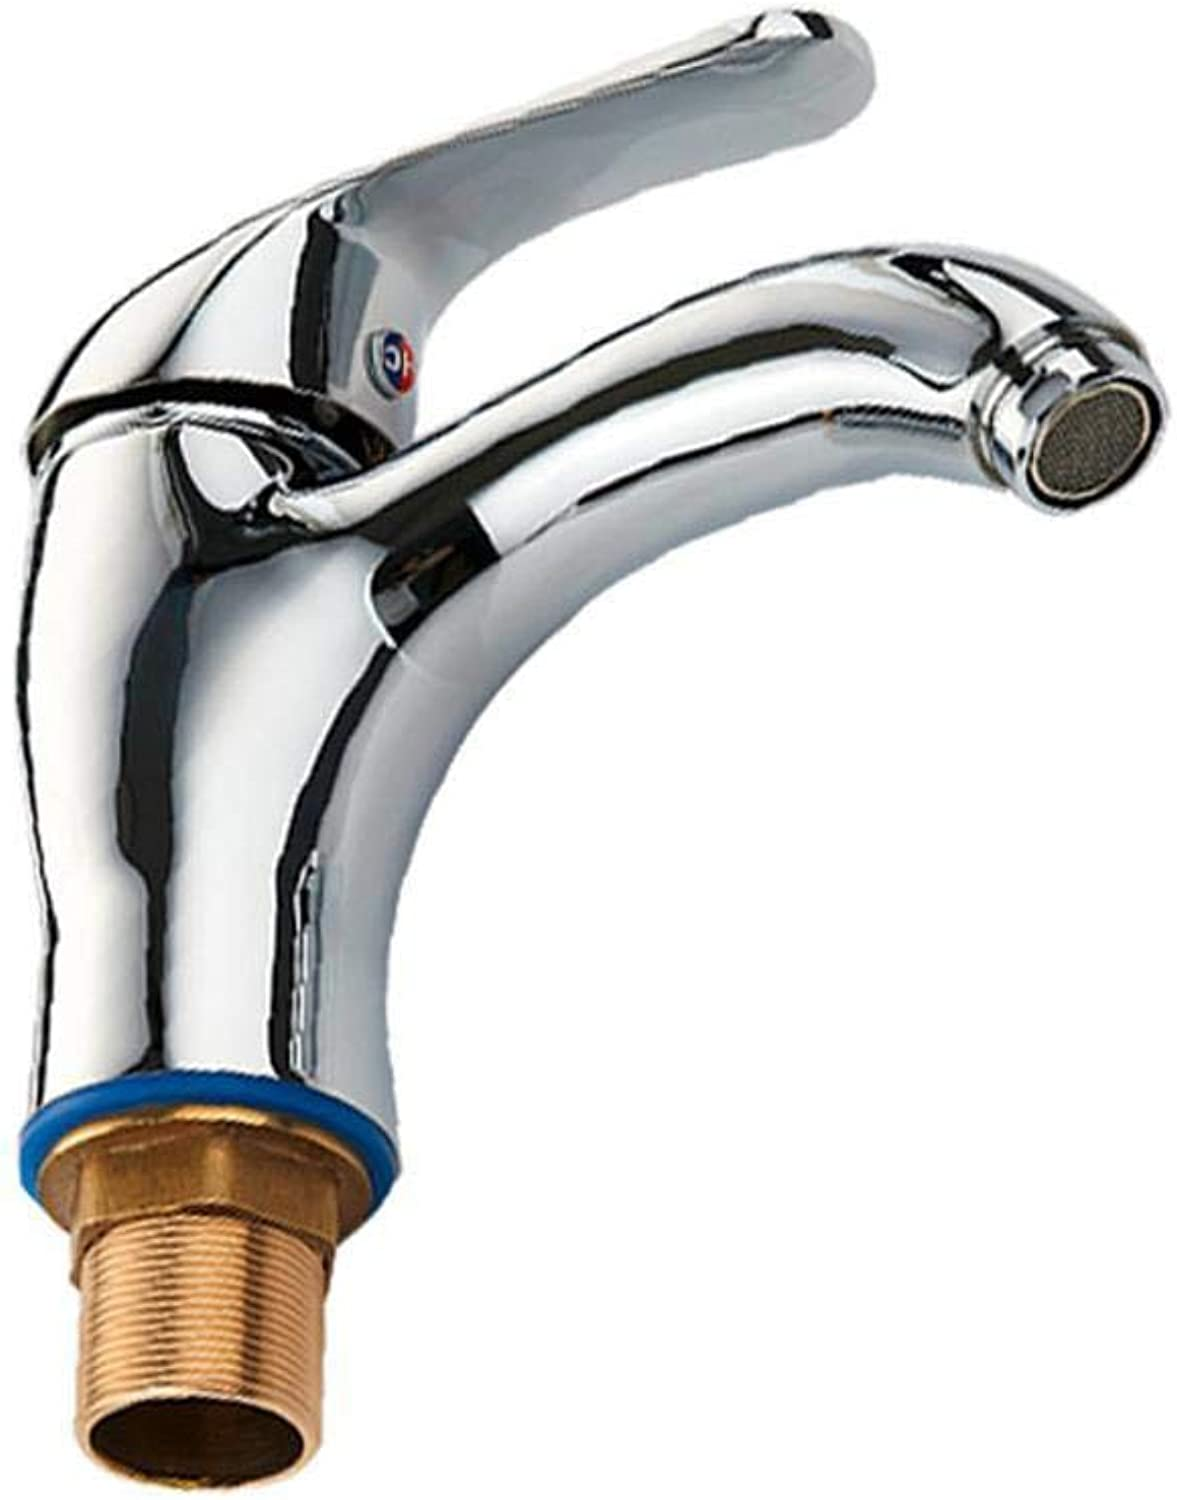 Qpw Basin hot and Cold Faucet